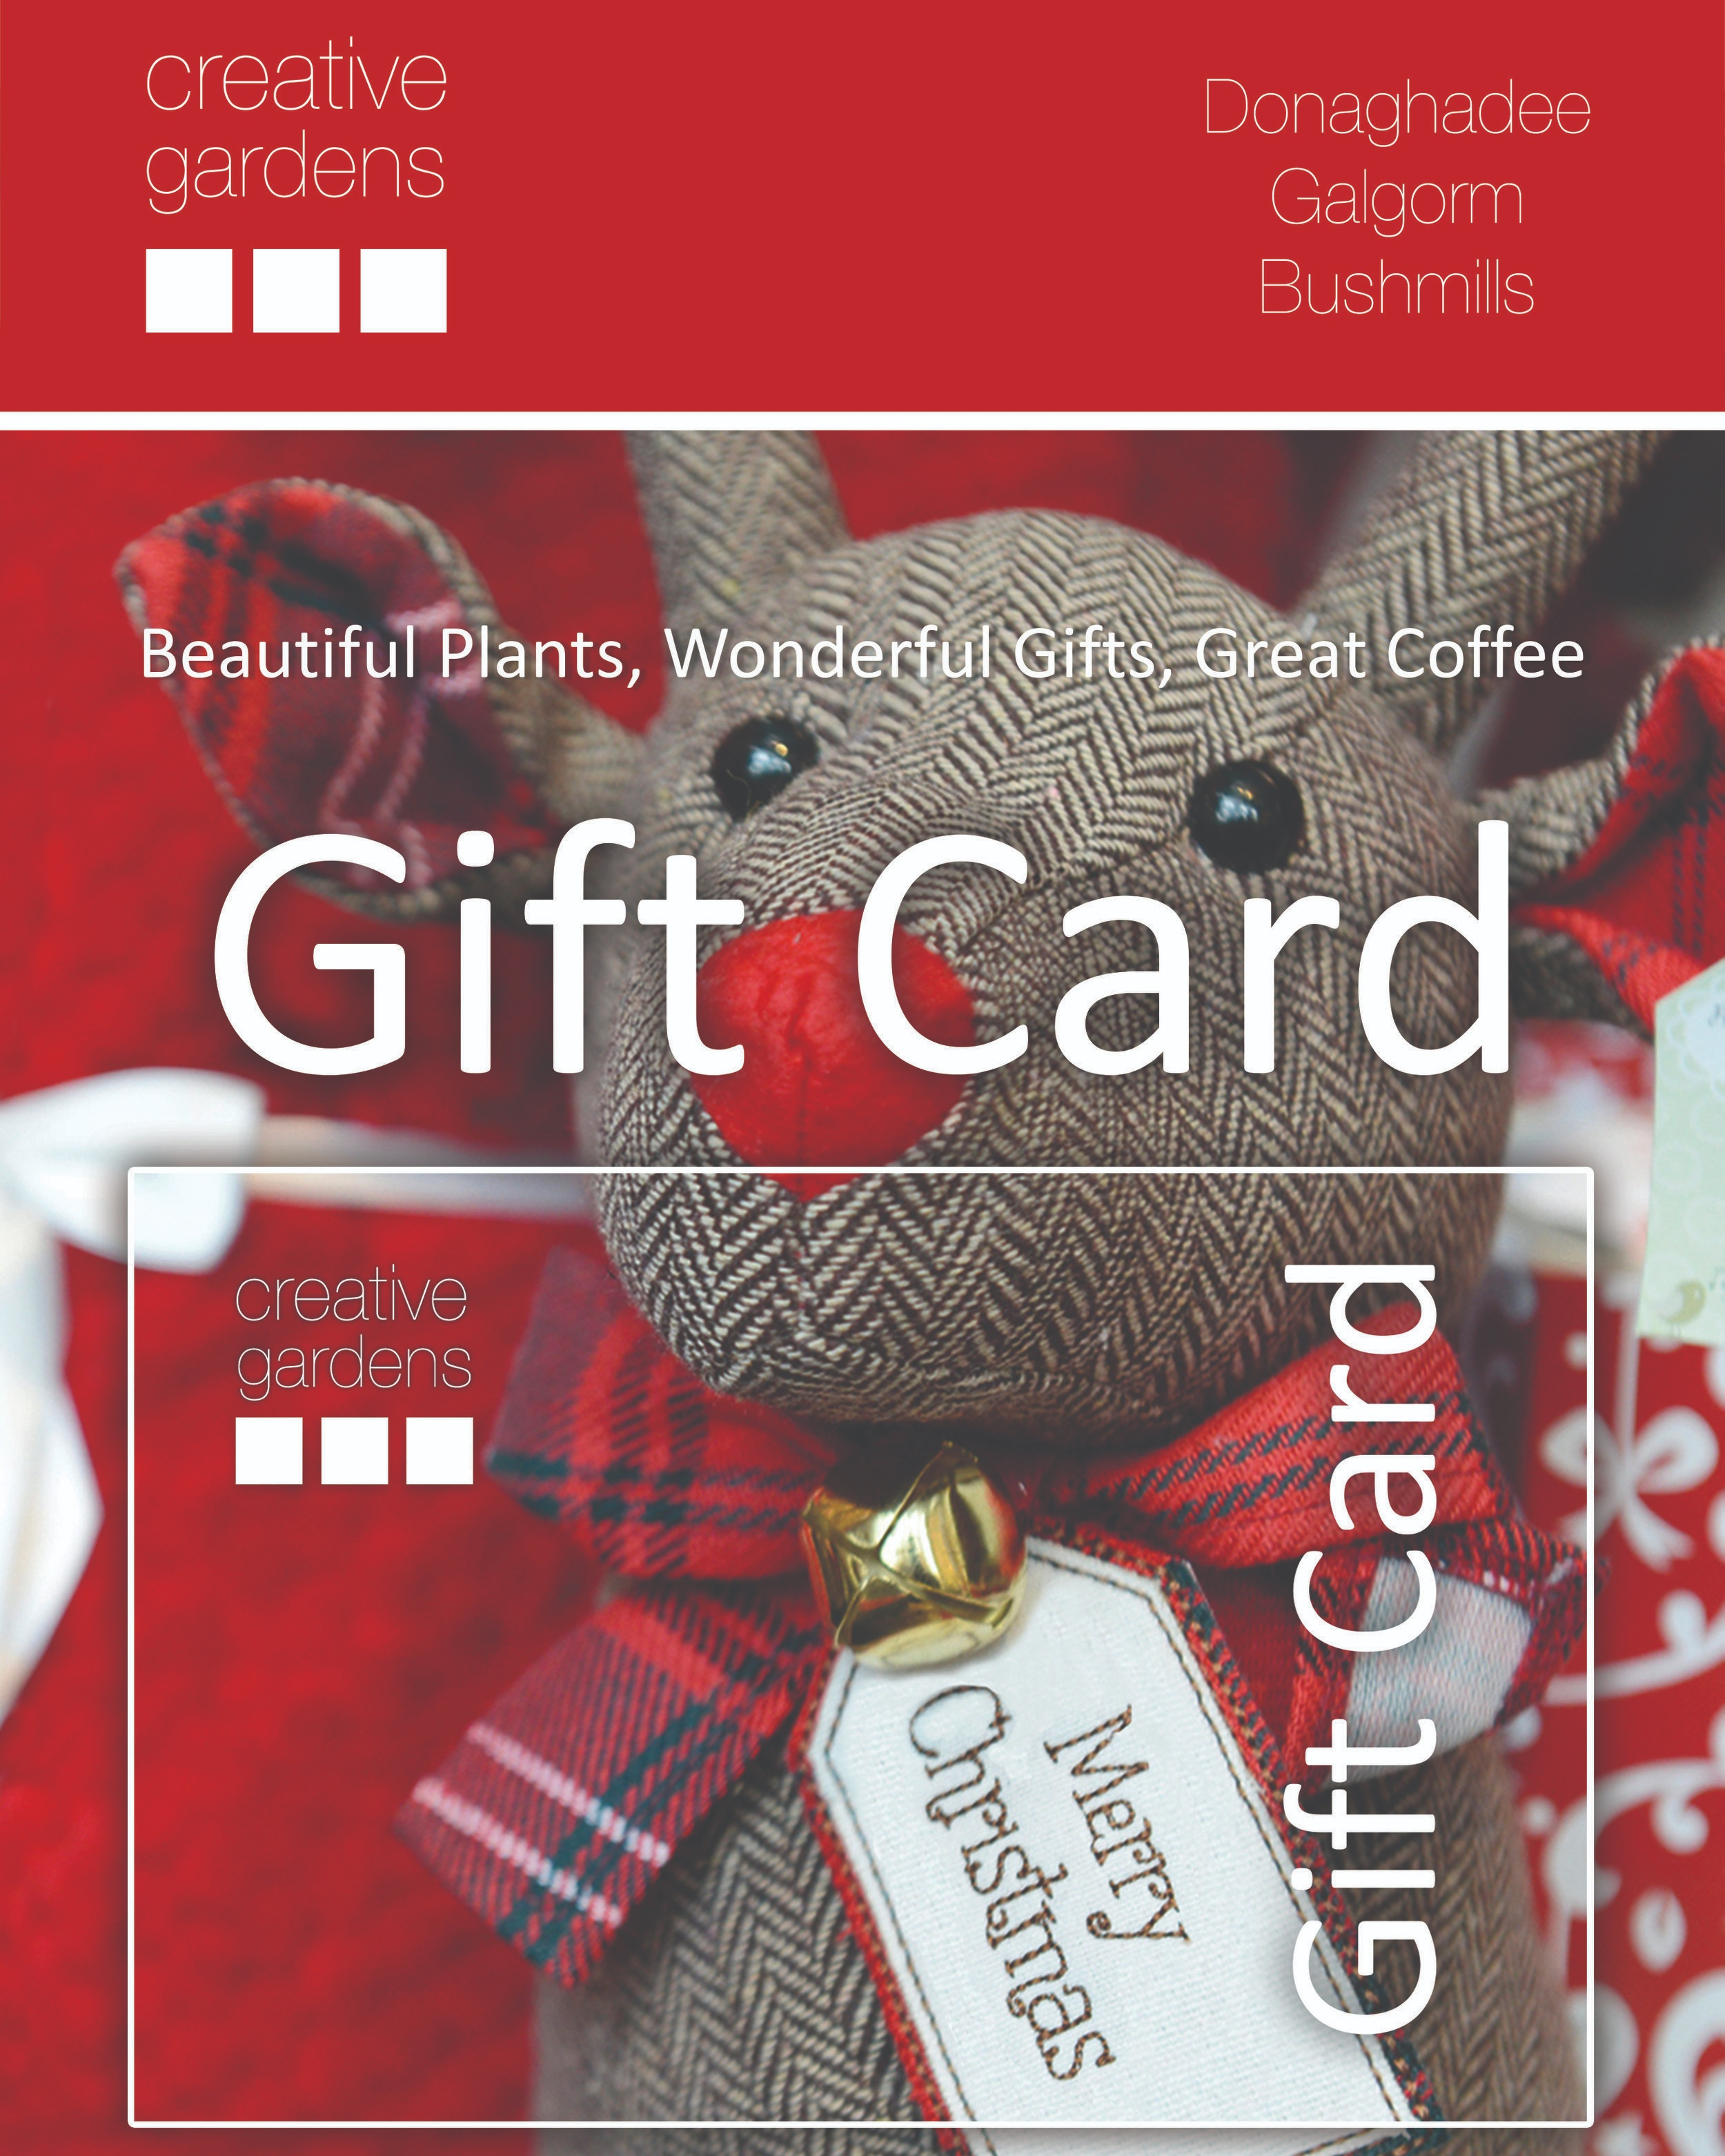 Stuck for a present idea? - You can't go wrong with a gift card for Creative Gardens! Available in any value from £5 and can be used at any of our award winning garden centres and cafes! Want it before Christmas?Buy in store or purchase online by Wednesday 19th December